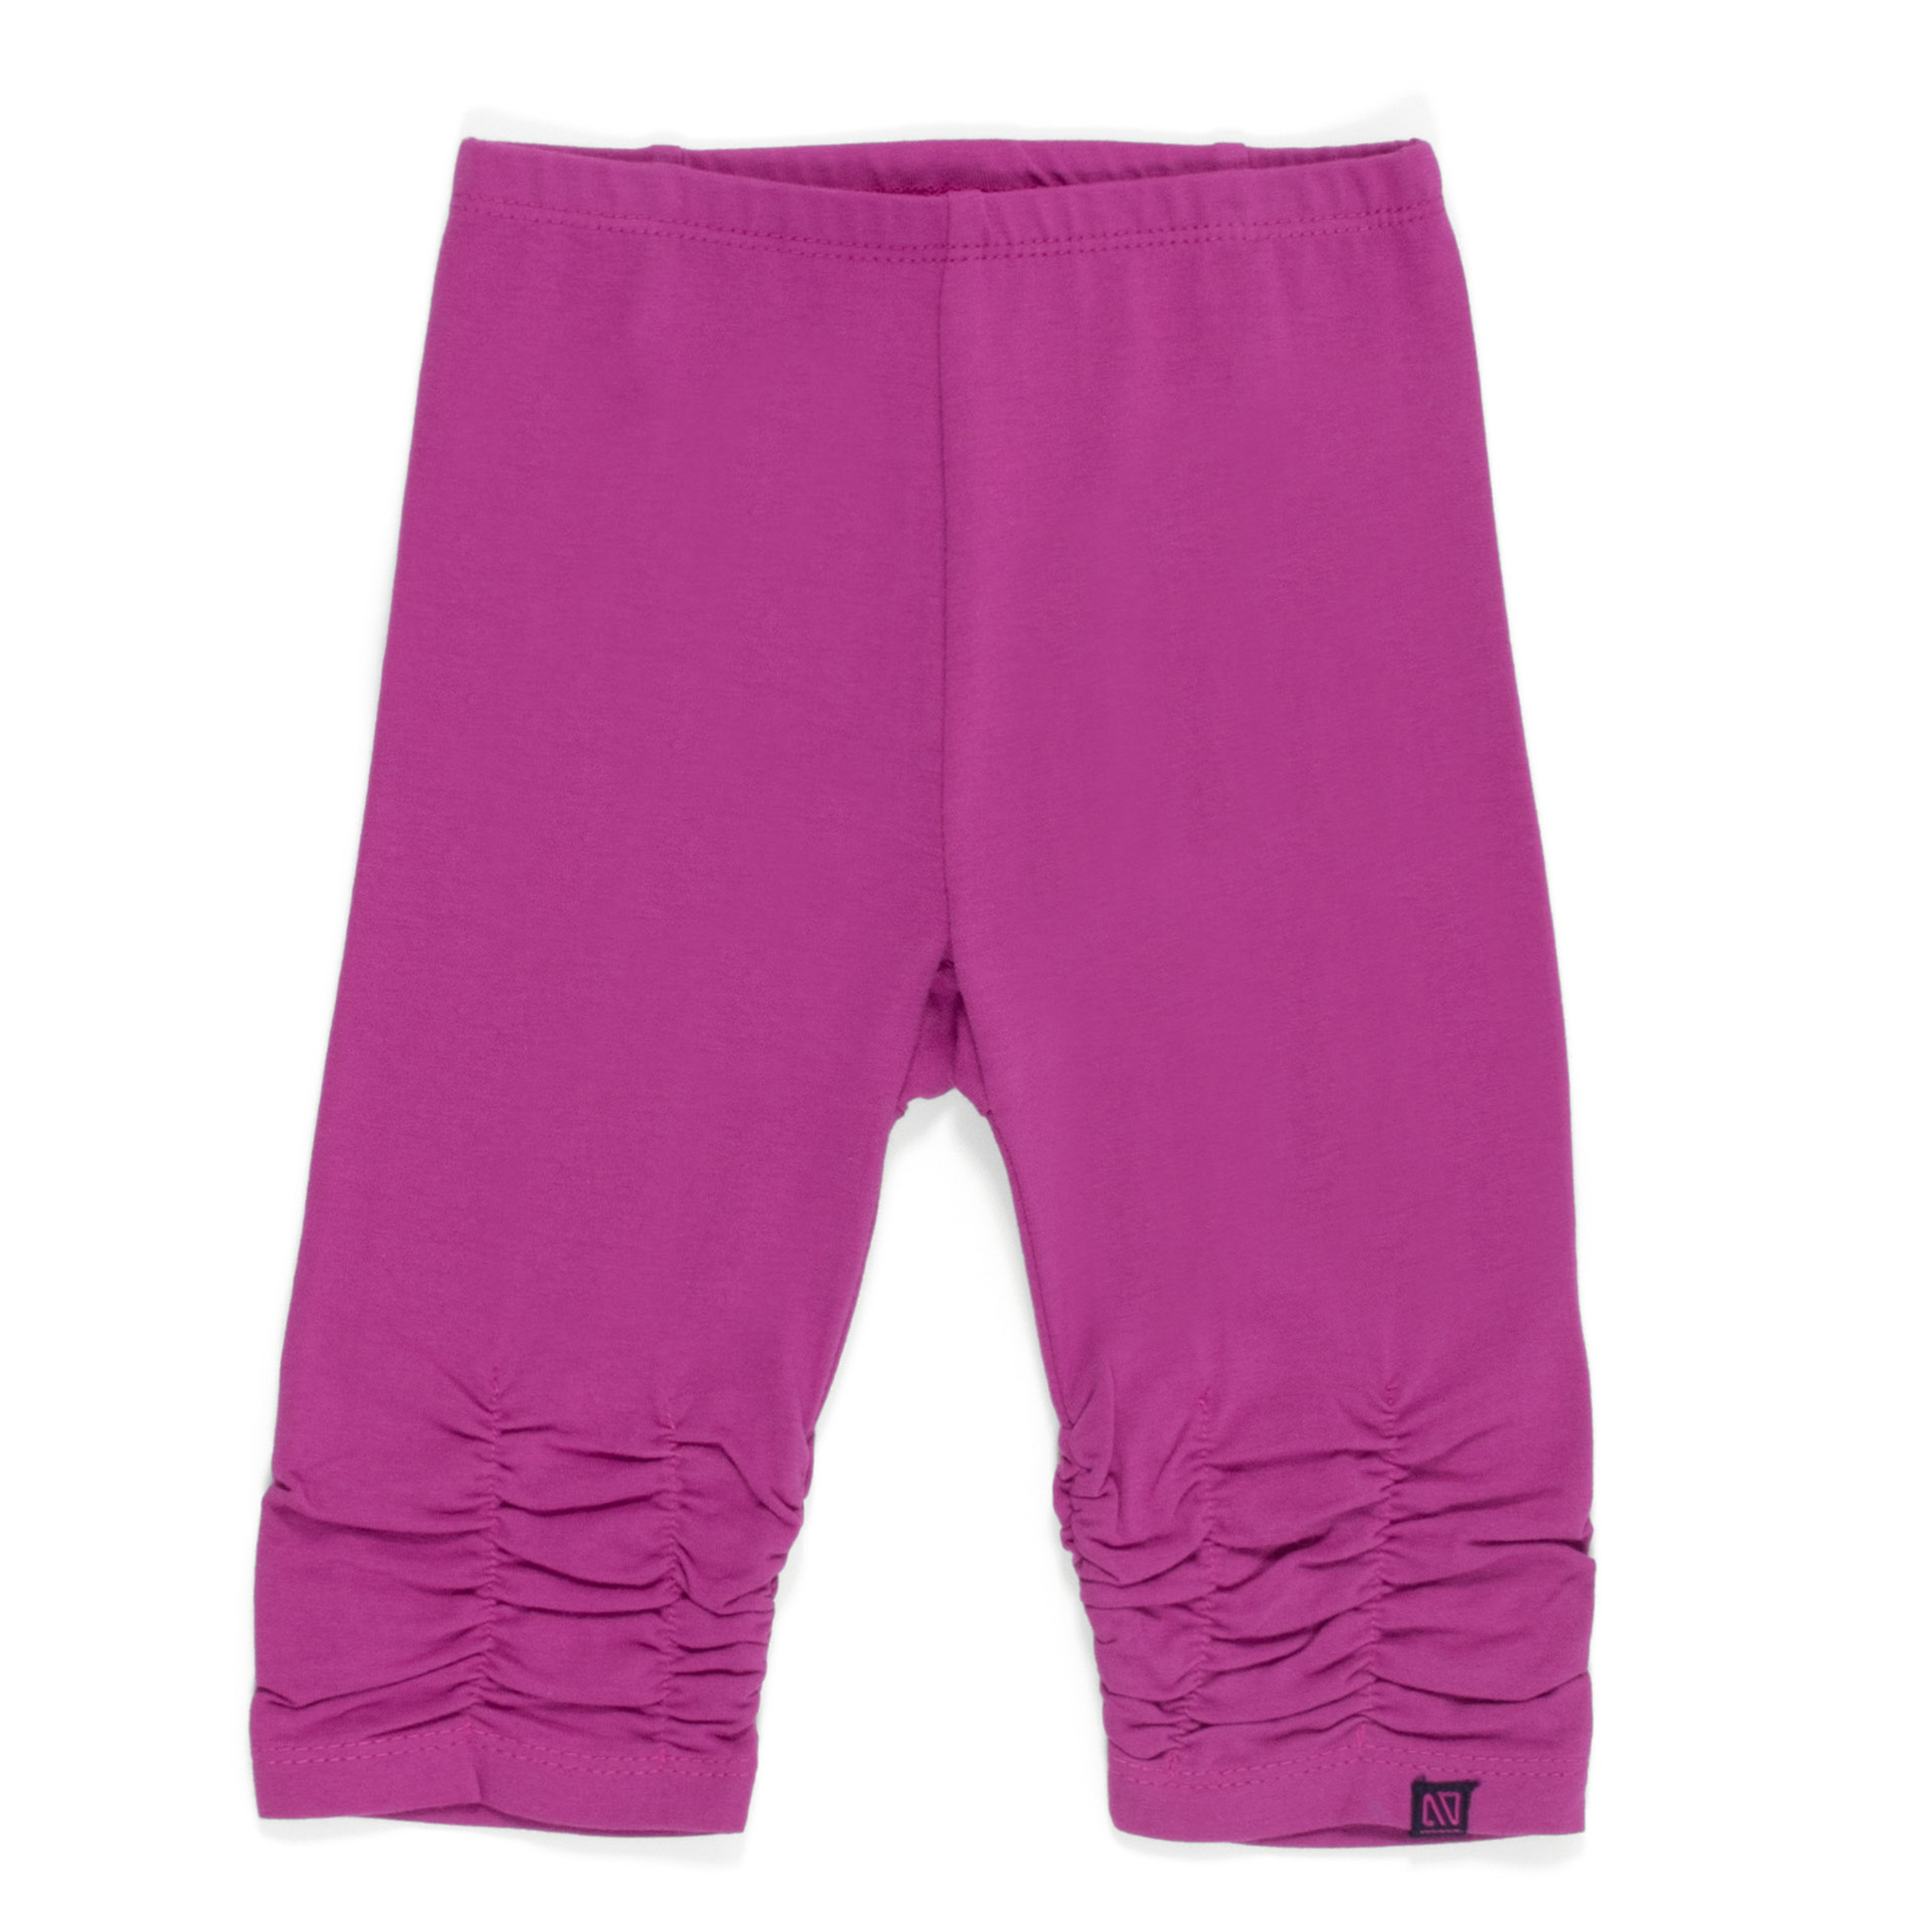 3/4 leggings - Fuchsia - Girls